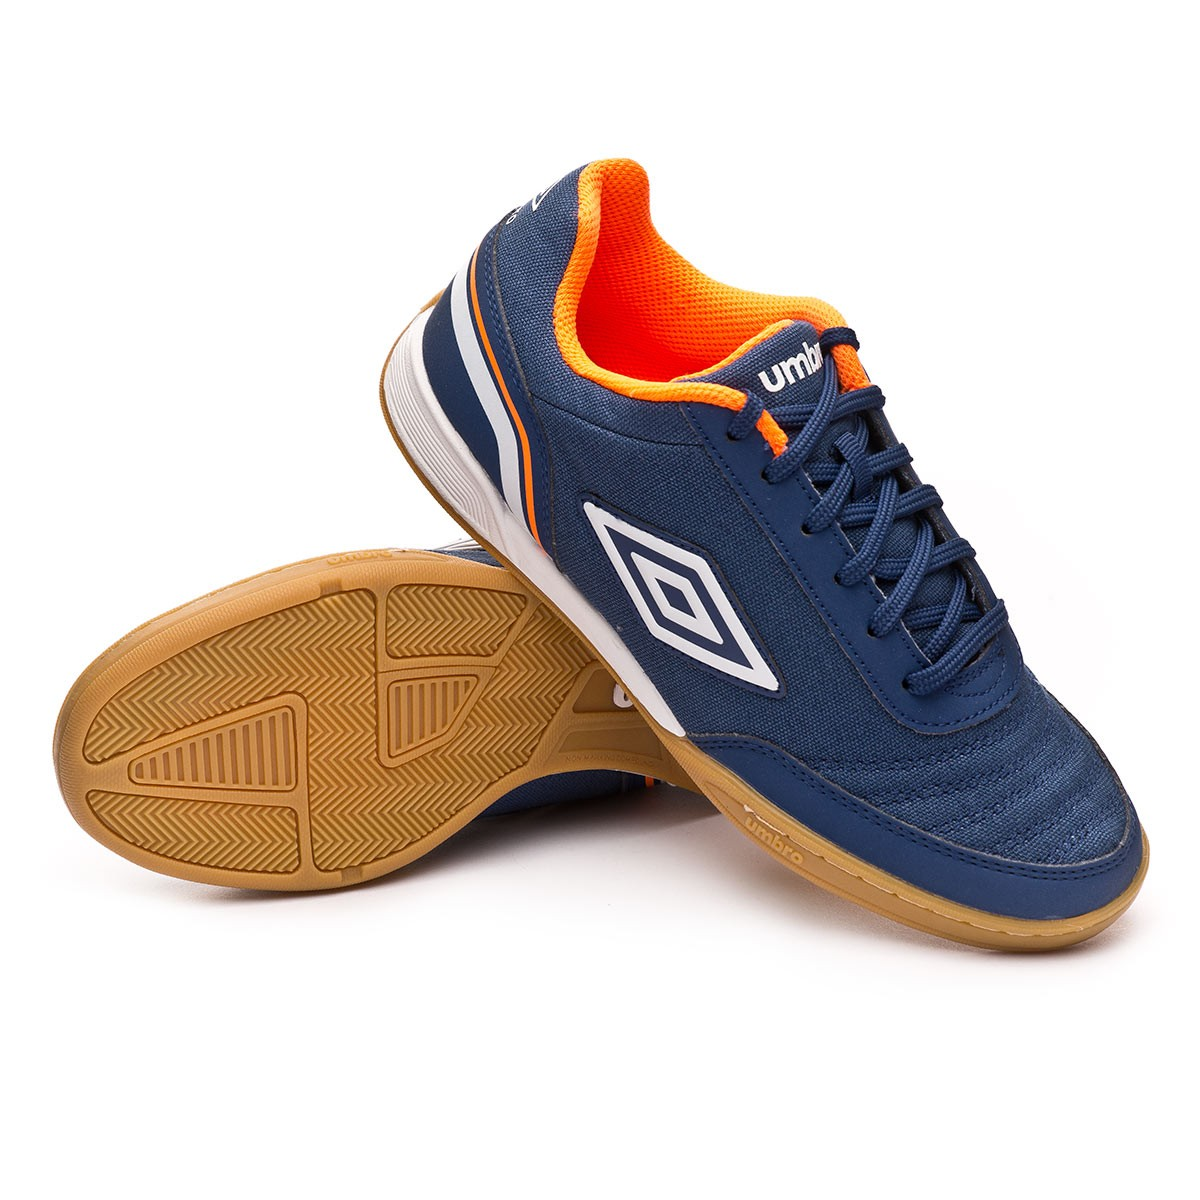 ebd6ae02385 Futsal Boot Umbro Futsal Street V IC Navy - Football store Fútbol Emotion